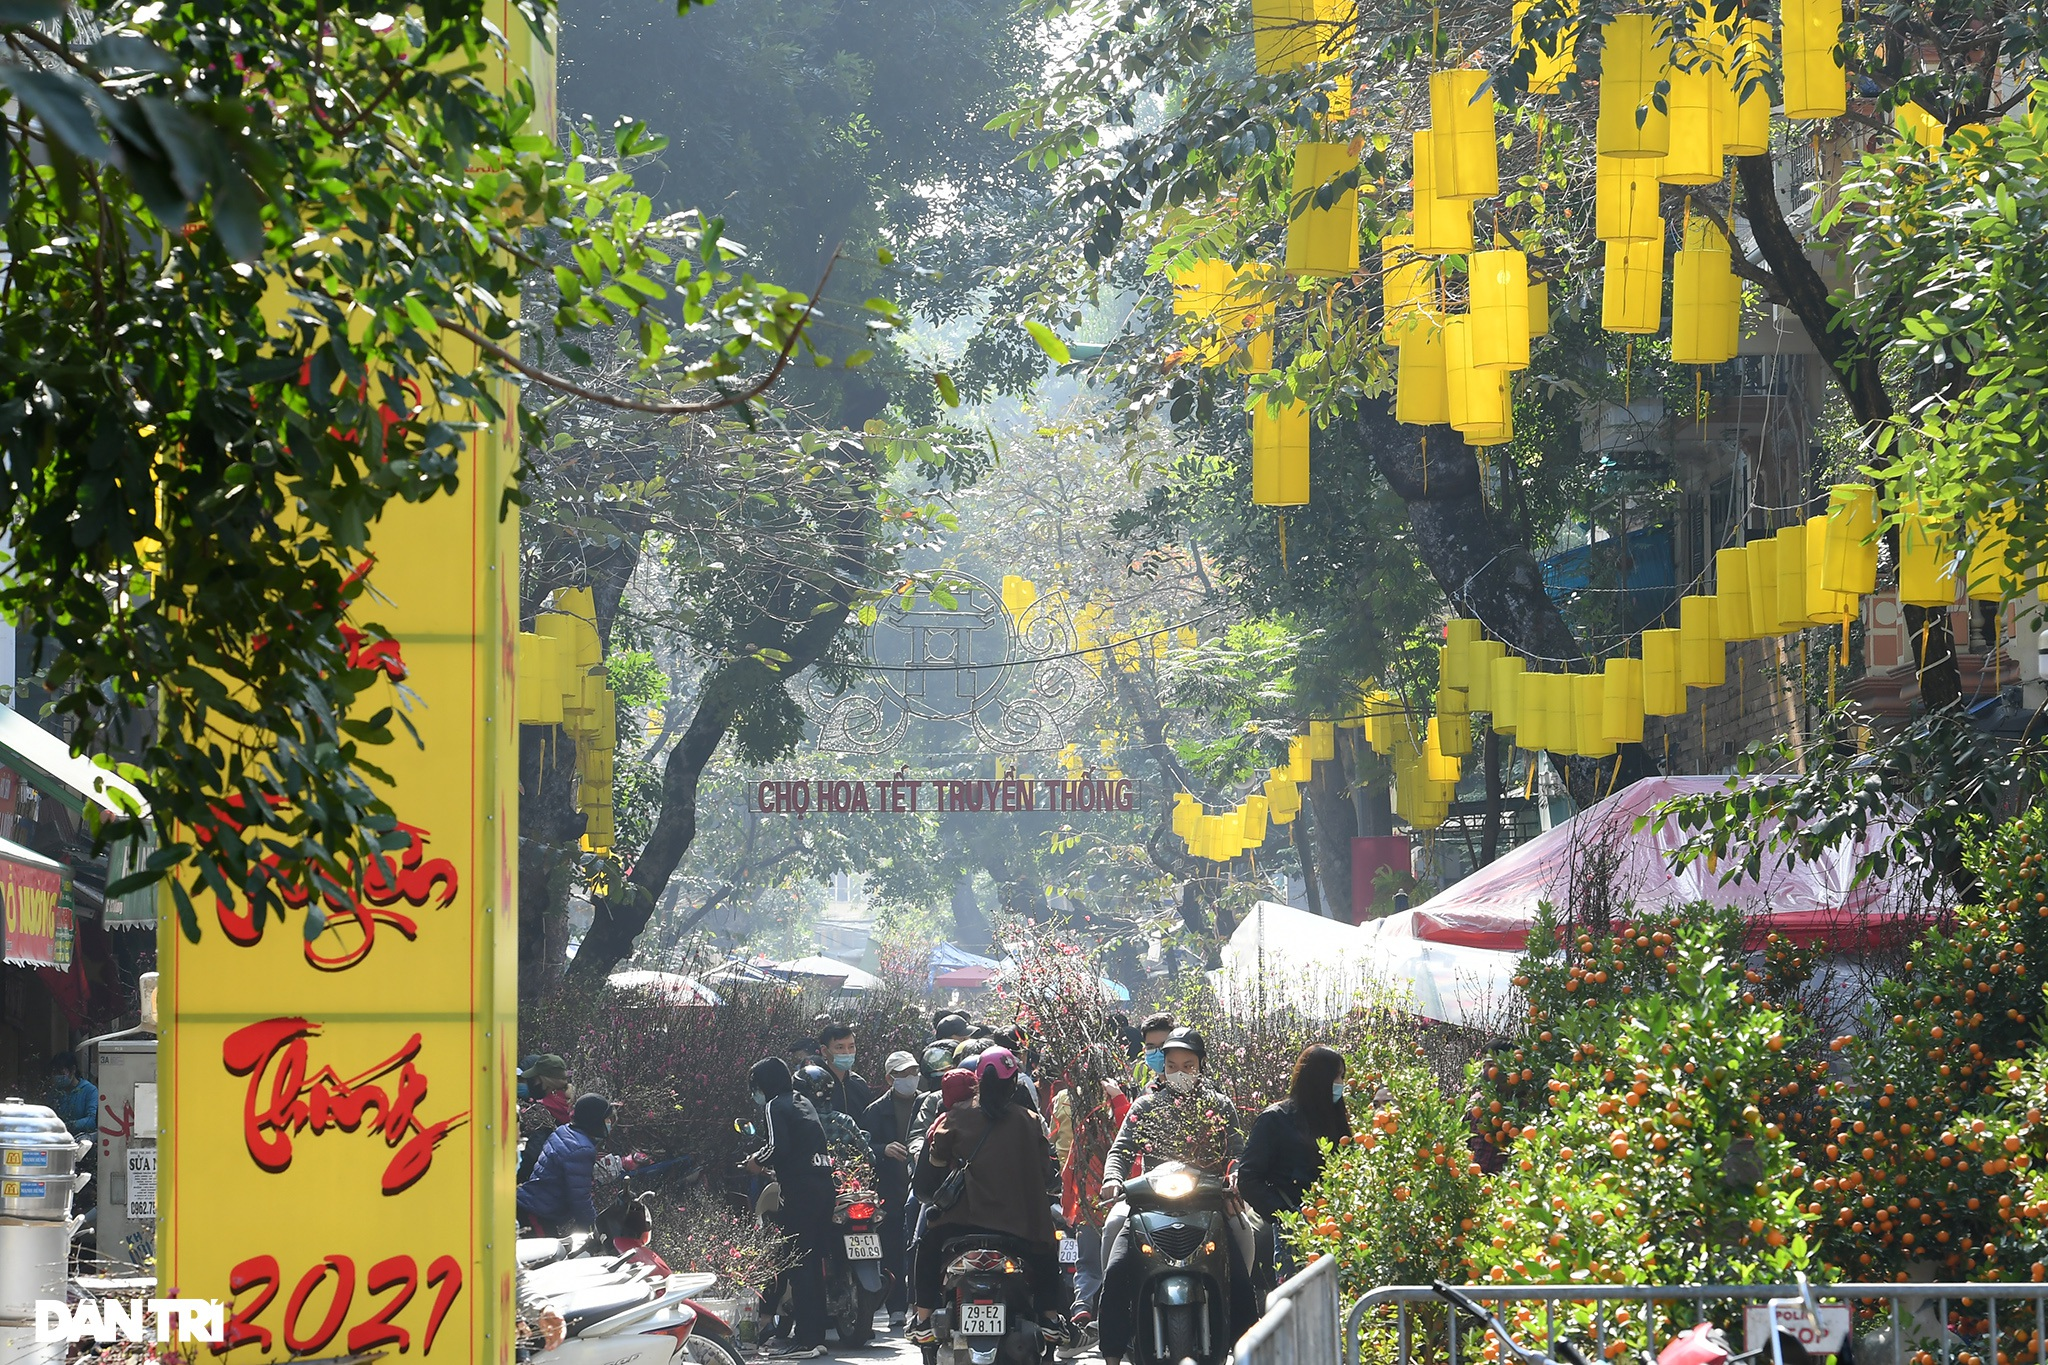 The sunshine came back and filled the streets of Hanoi on 29 Tet - 1